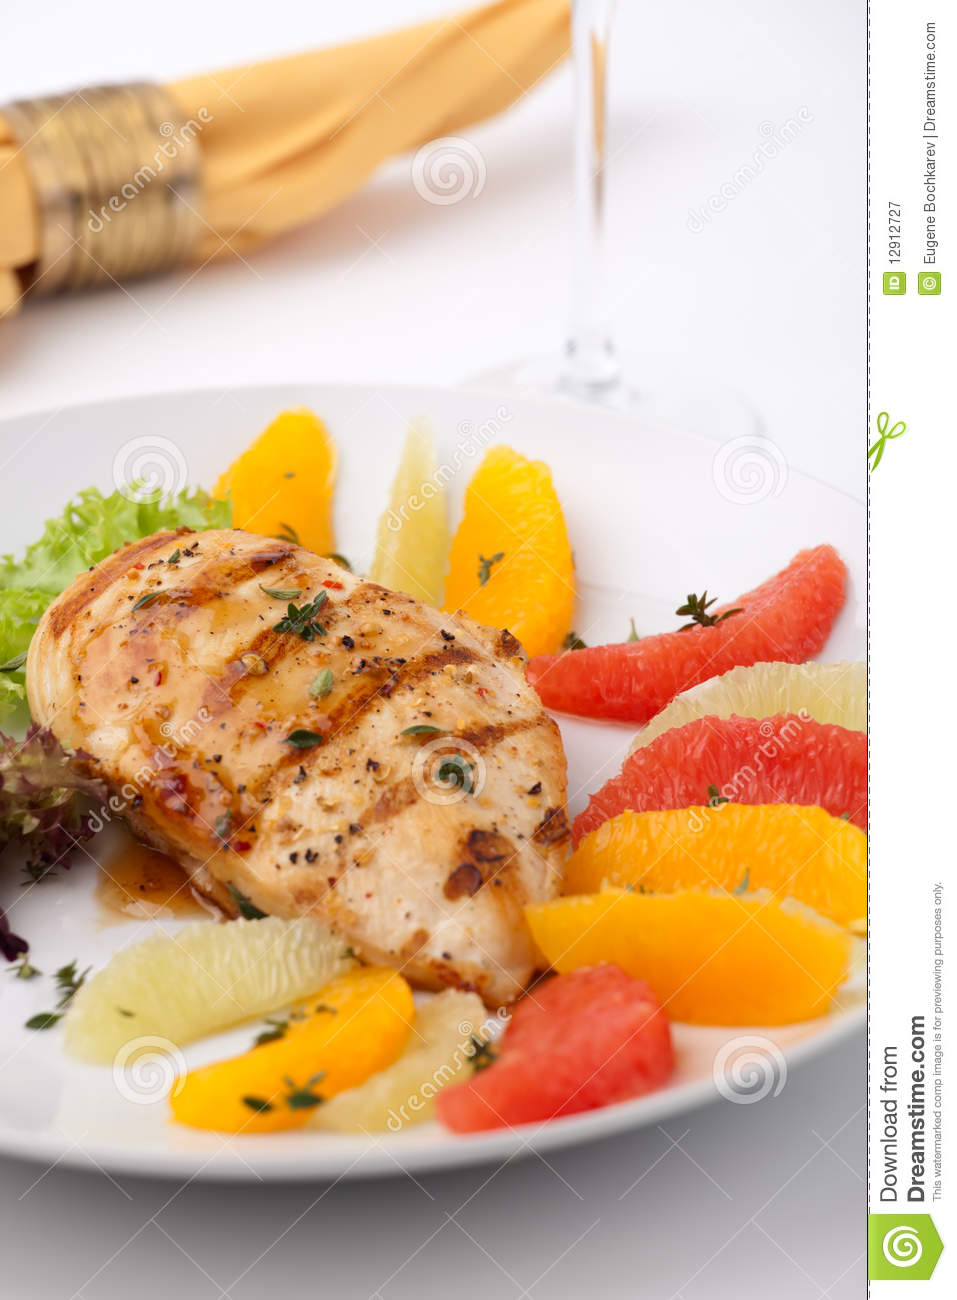 Grilled Chicken Breast And Citrus Salad Royalty Free Stock Photography ...